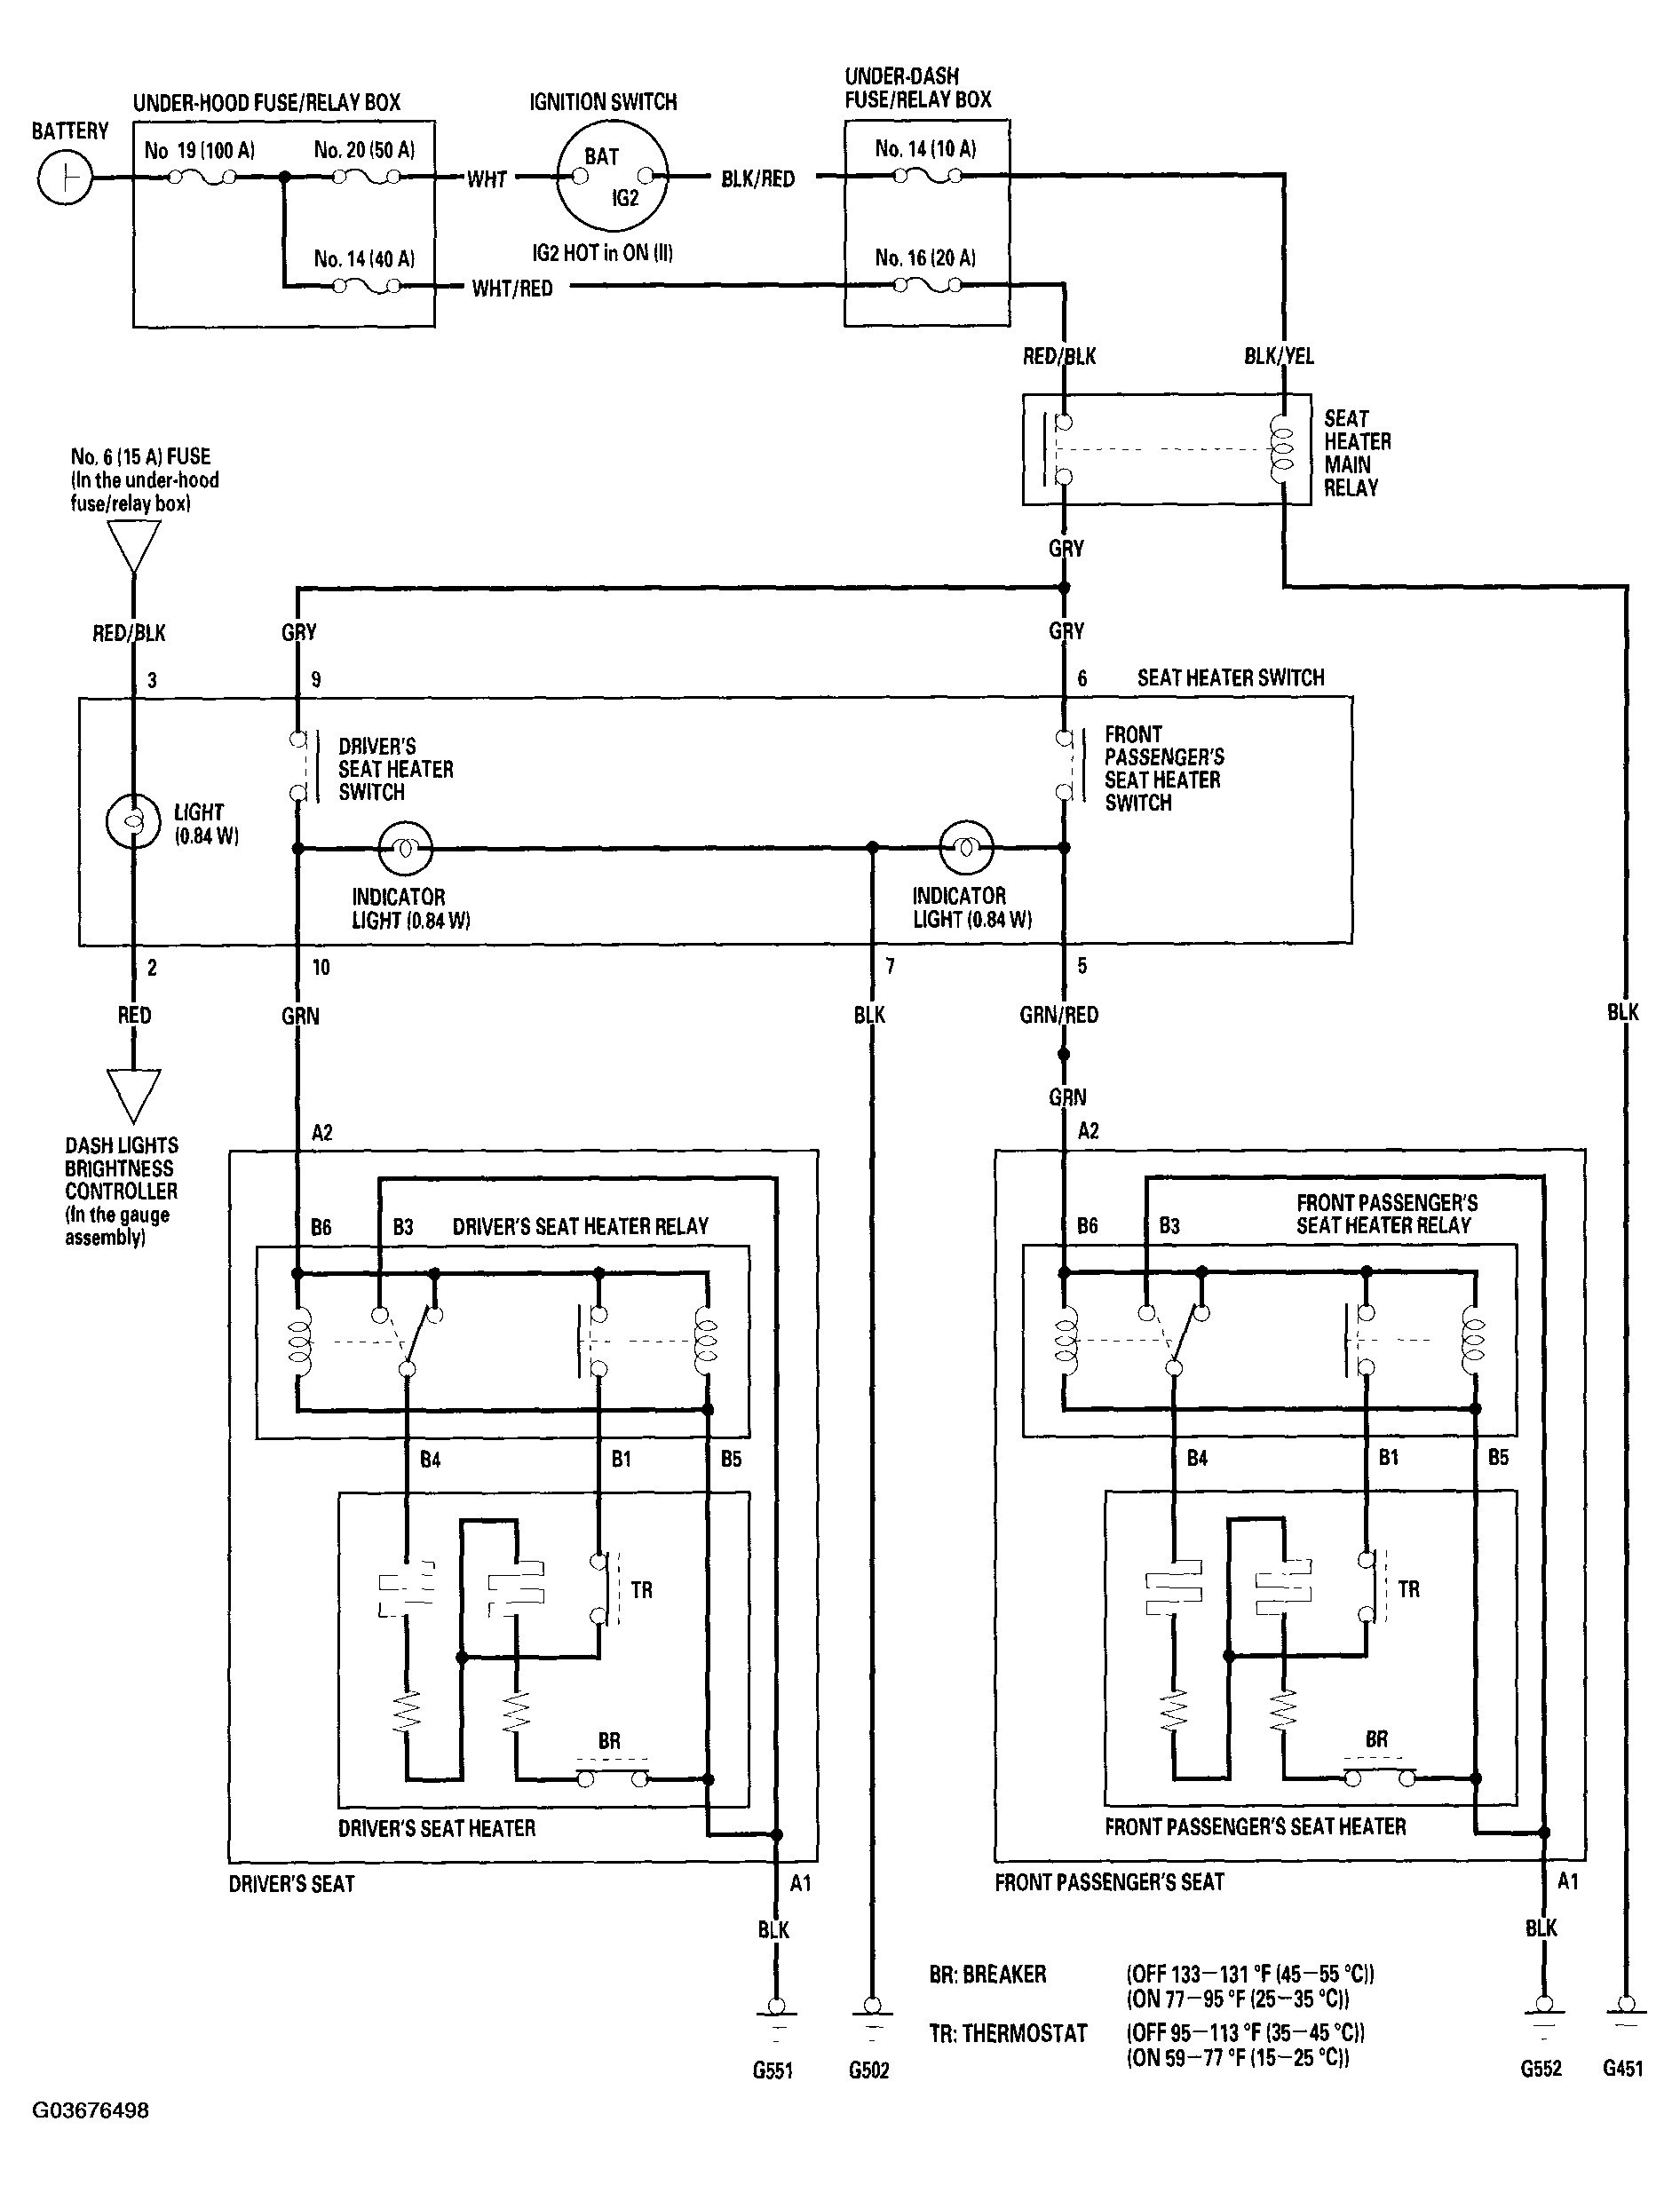 94 Honda Accord Engine Diagram 1994 Honda Accord Engine Diagram Cr V Fuse Box Diagram Besides Honda Of 94 Honda Accord Engine Diagram